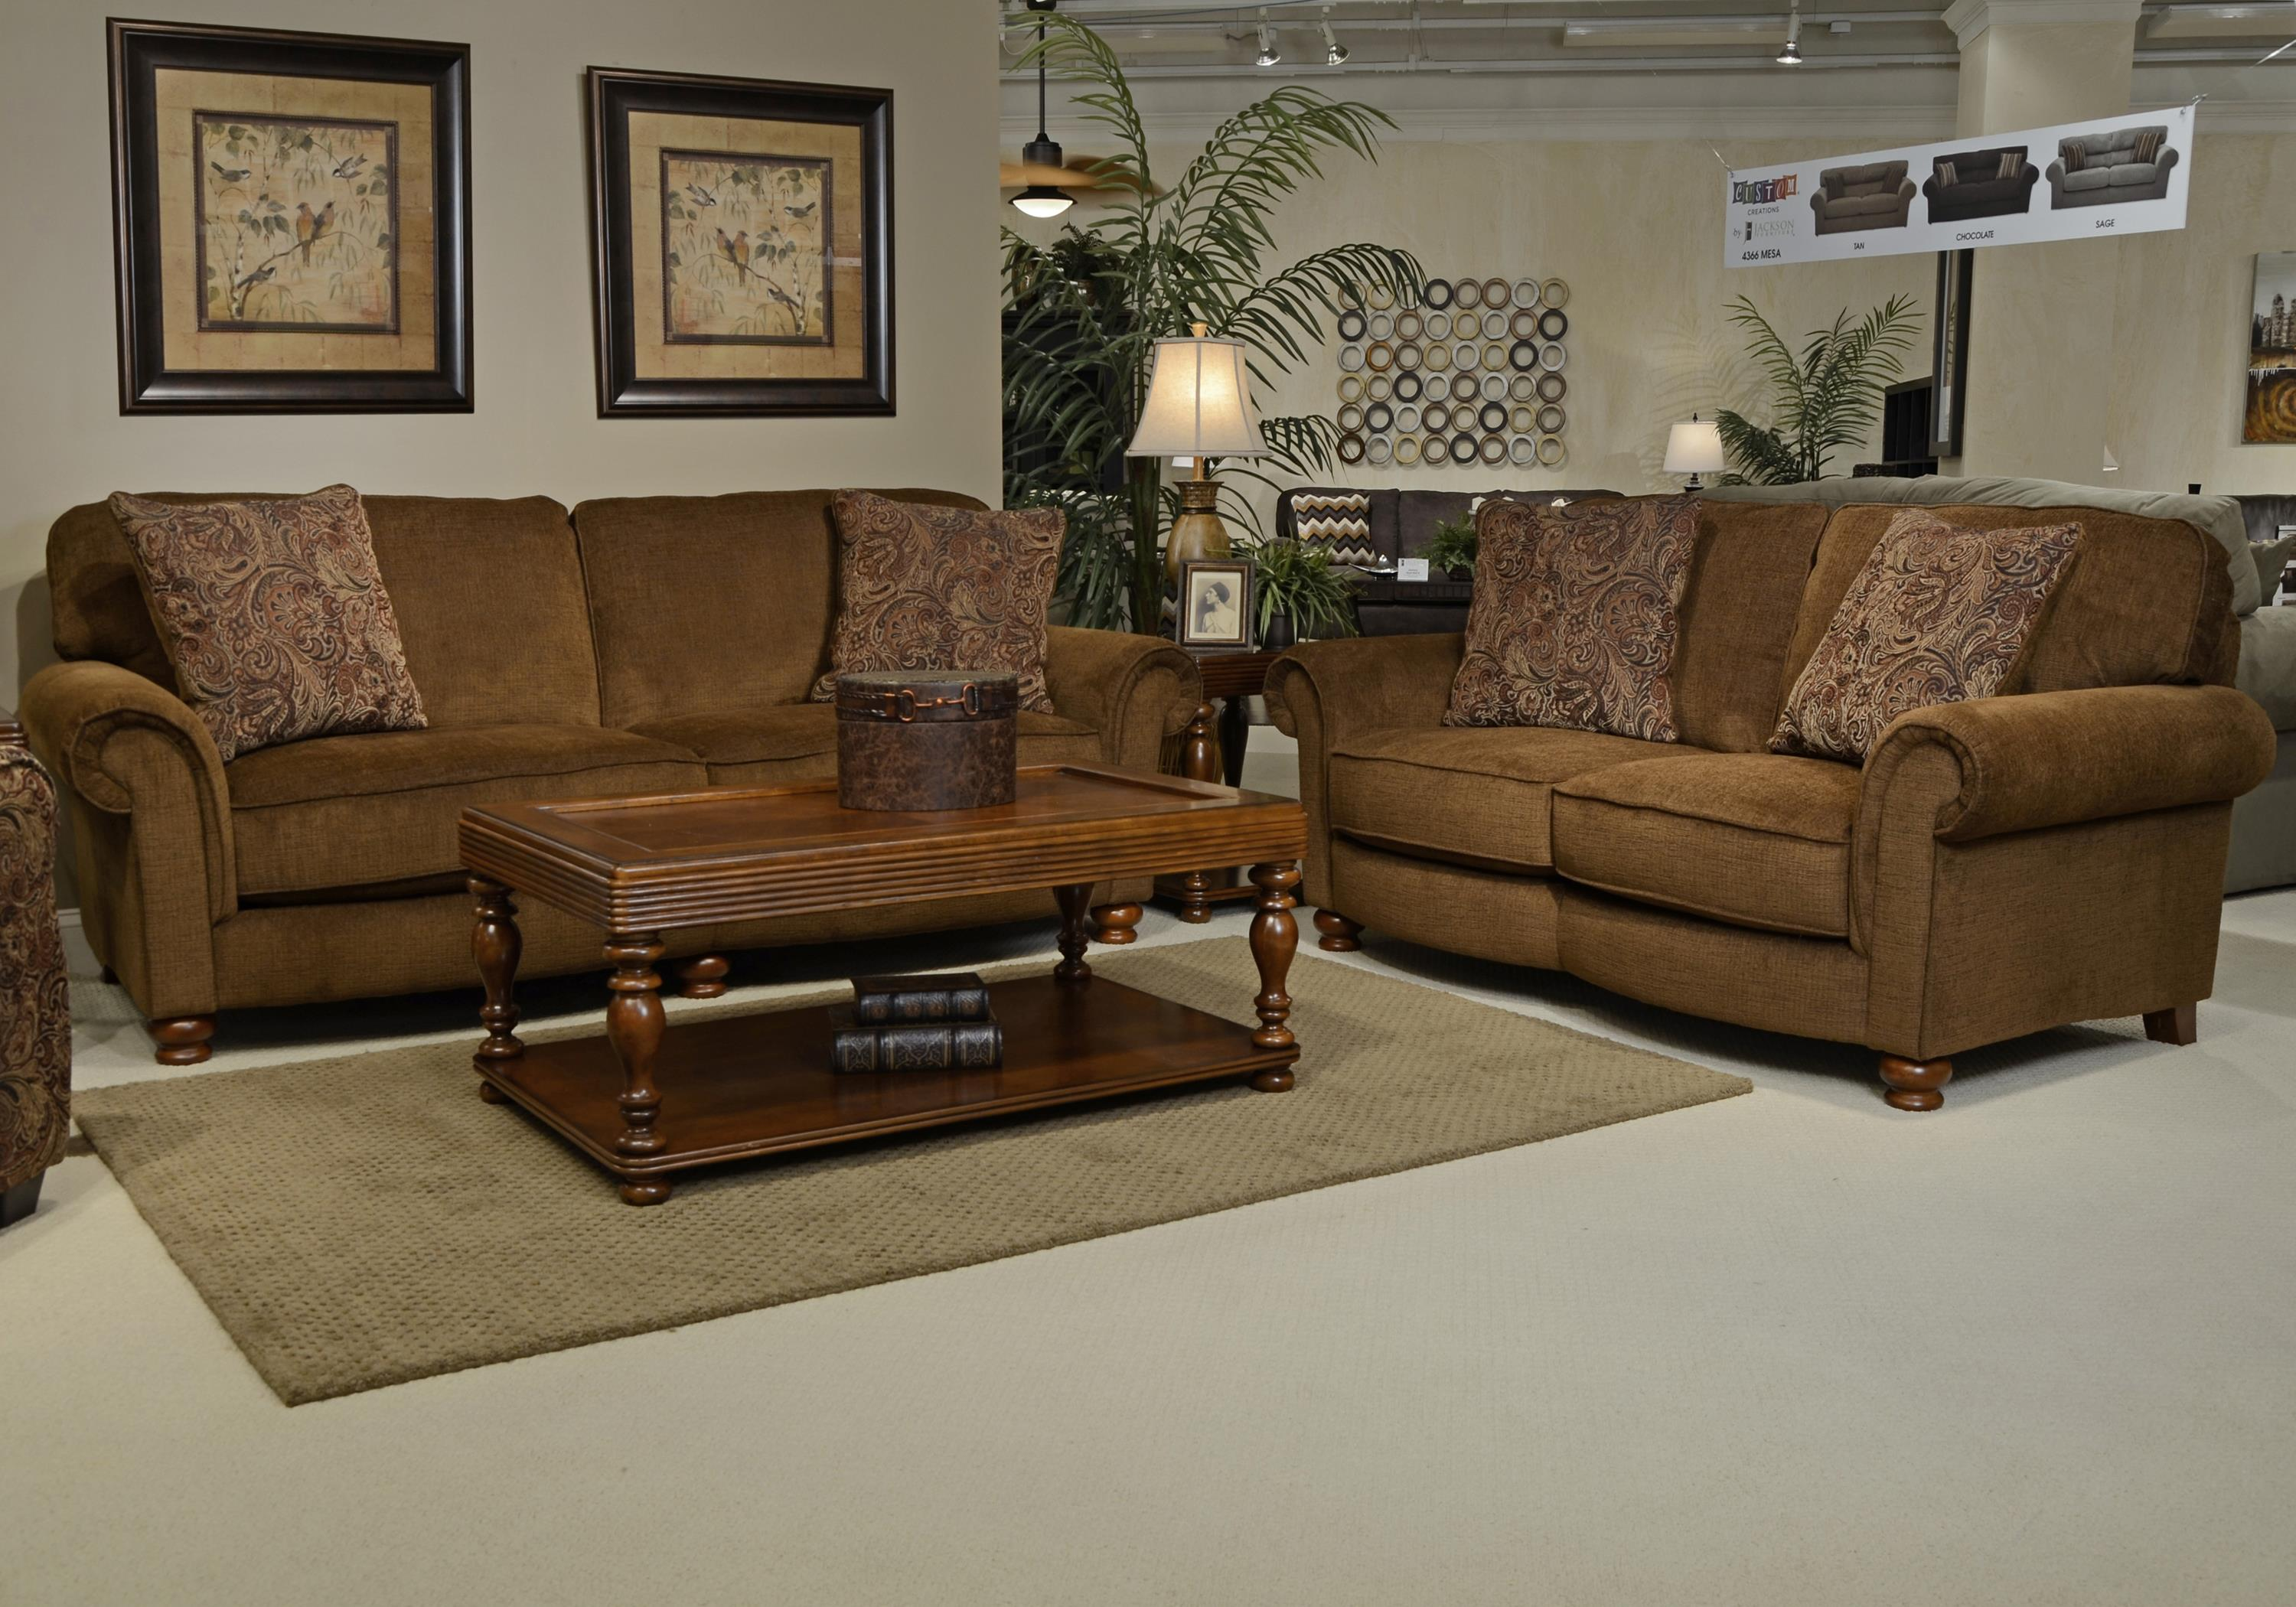 Jackson Furniture Downing Stationary Living Room Group Miskelly Furniture Stationary Living